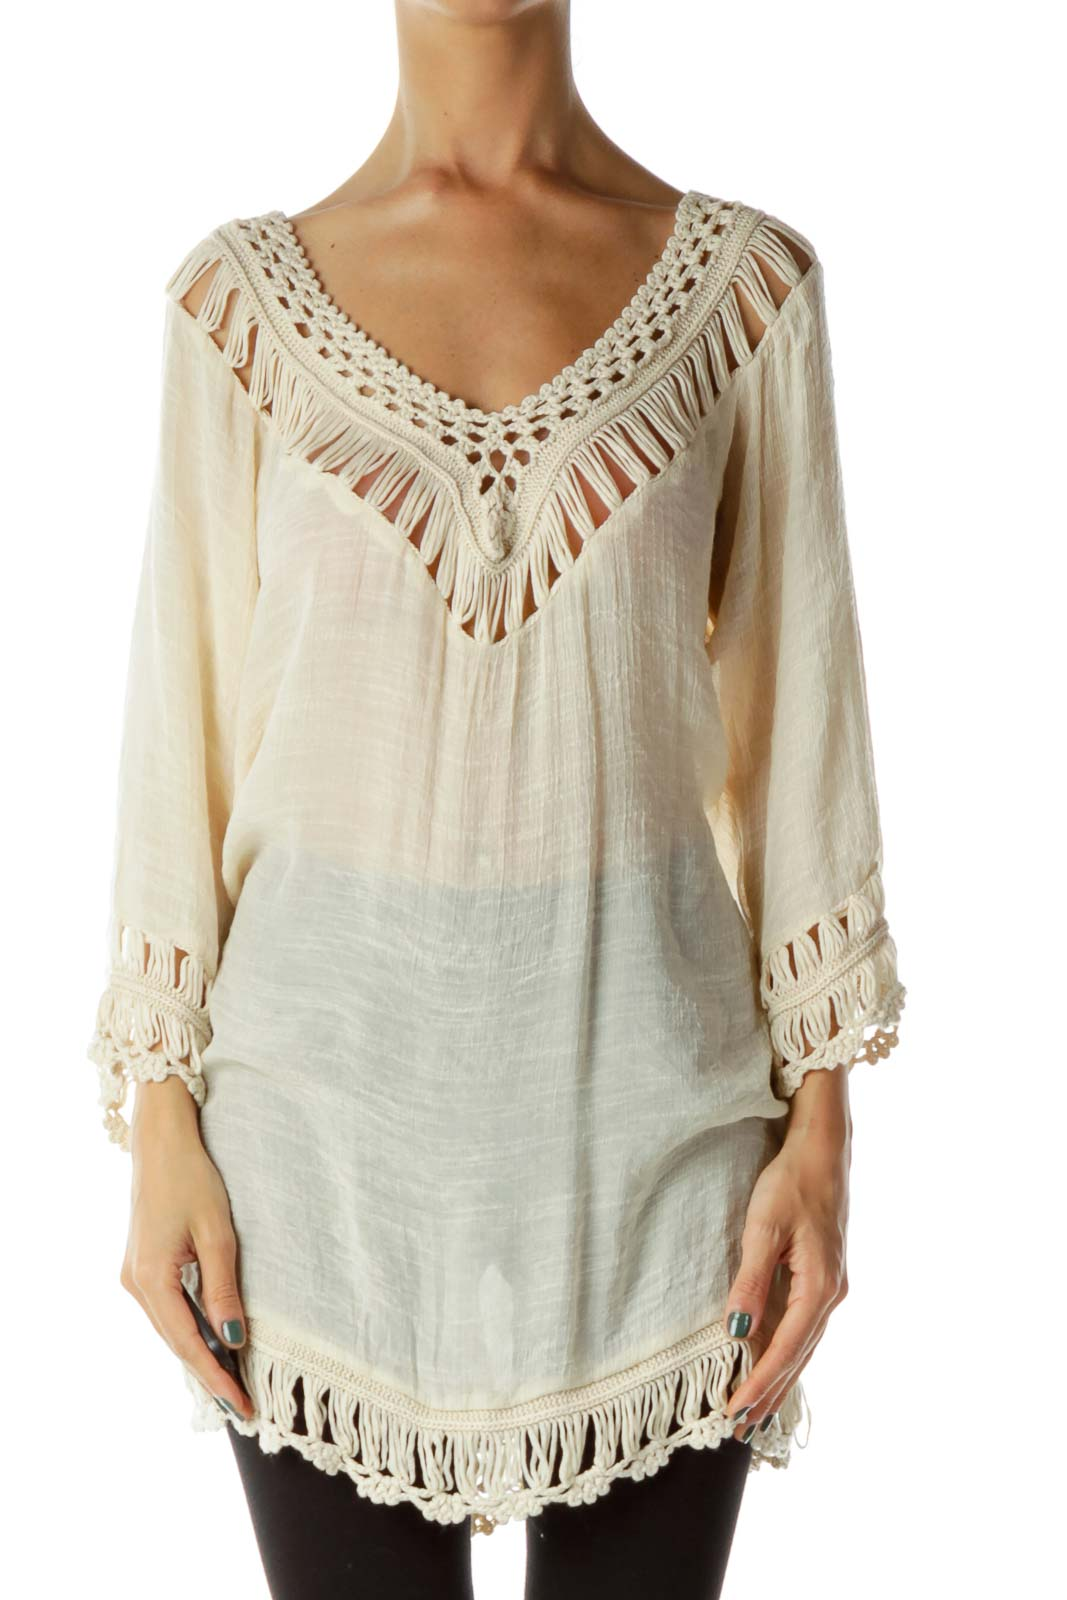 Beige Crocheted Blouse